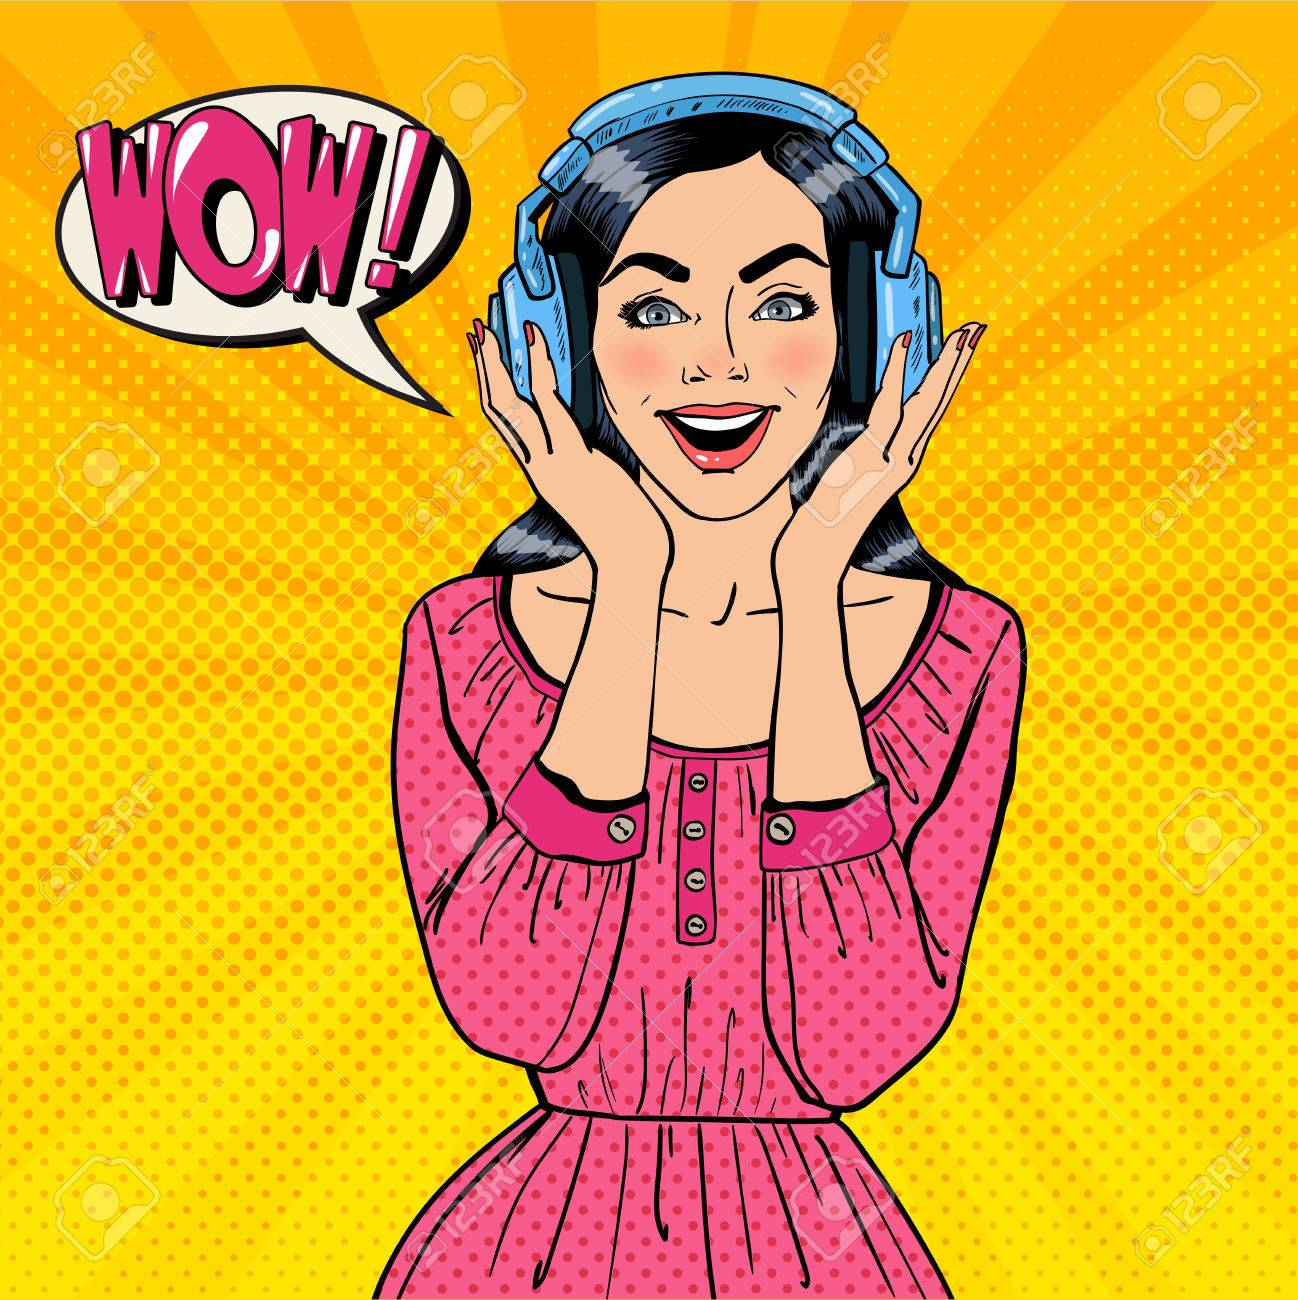 Excited Young Woman Listening Music. Girl in Headphones. Pop Art. Vector illustration - 58907538